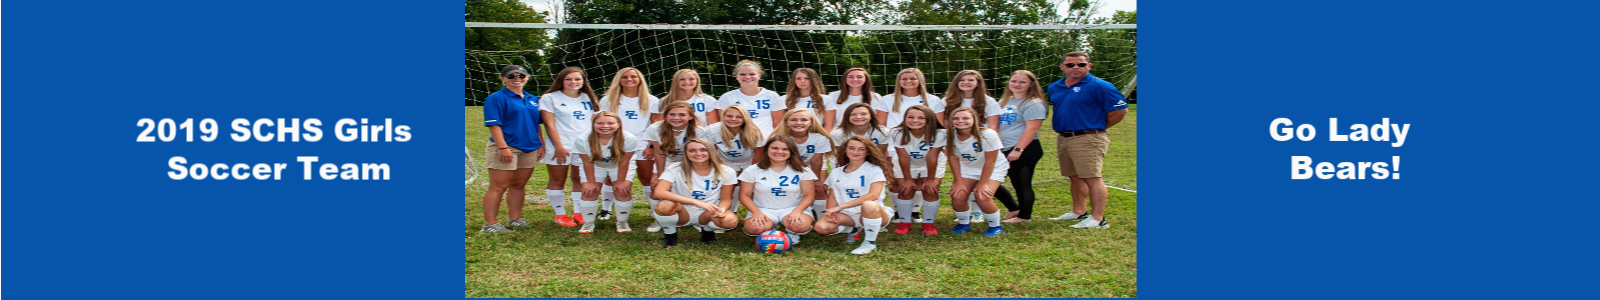 SCHS Girls Soccer Team 2019